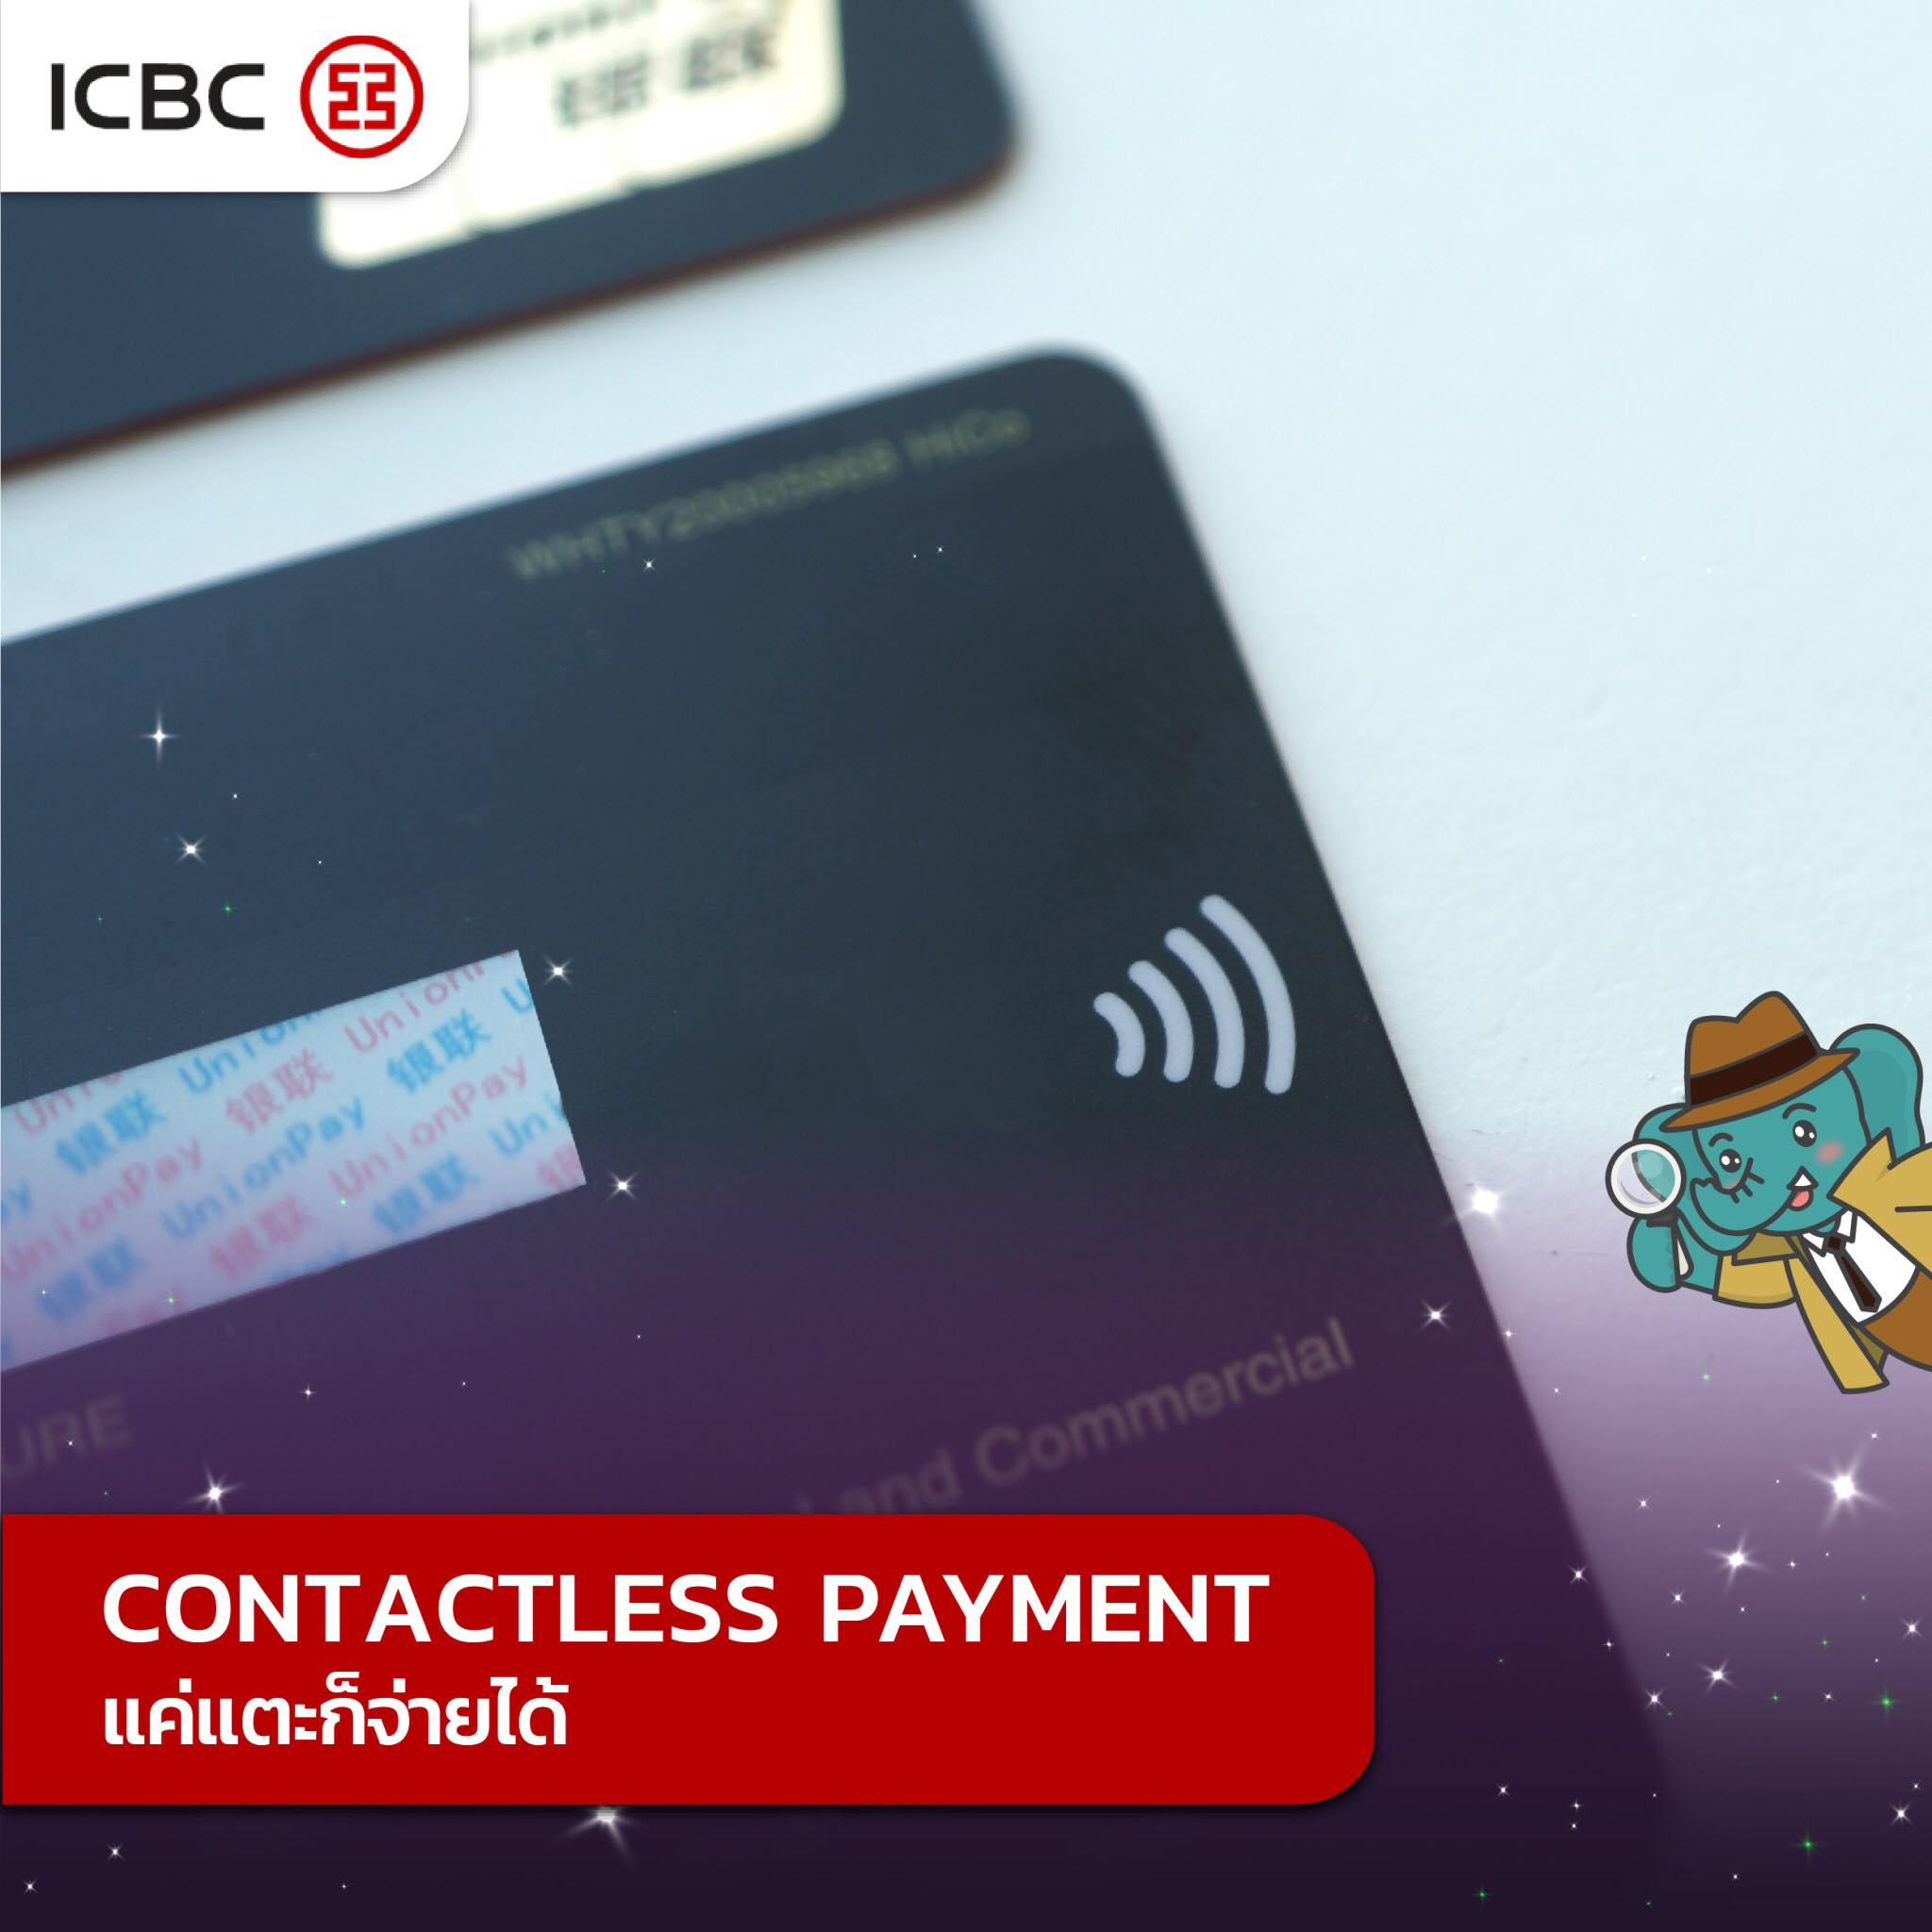 contactless-huaweipay-icbc-thai-horoscope